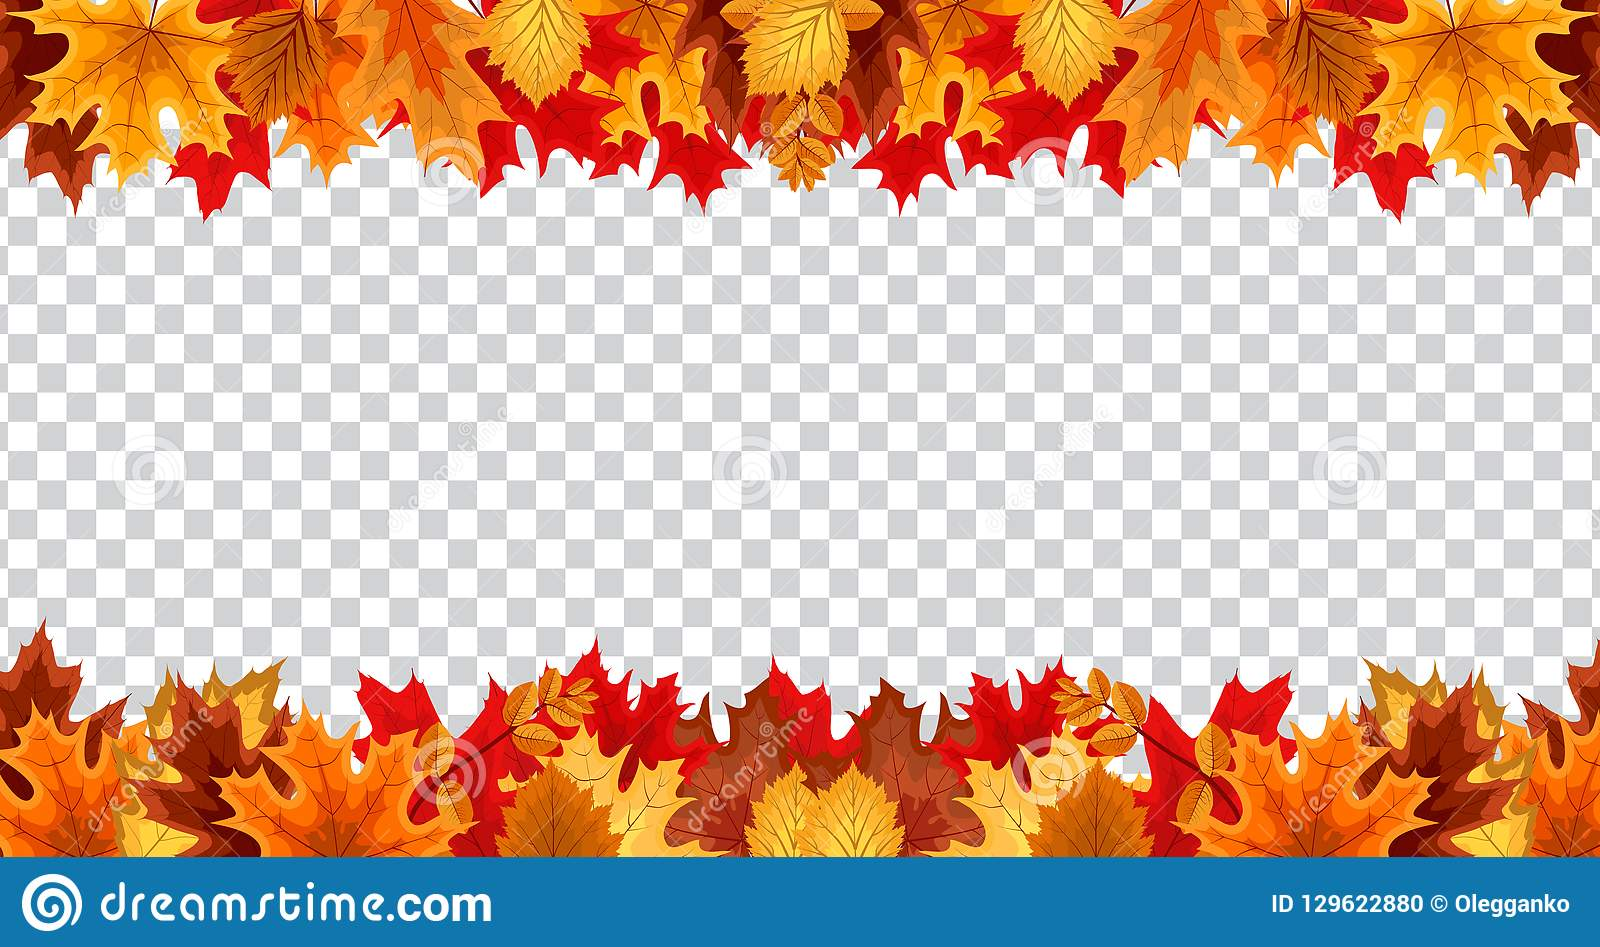 autumn-leaves-border-frame-space-text-transparent-background-can-be-used-thanksgiving-harvest-holida-autumn-leaves-129622880.jpg